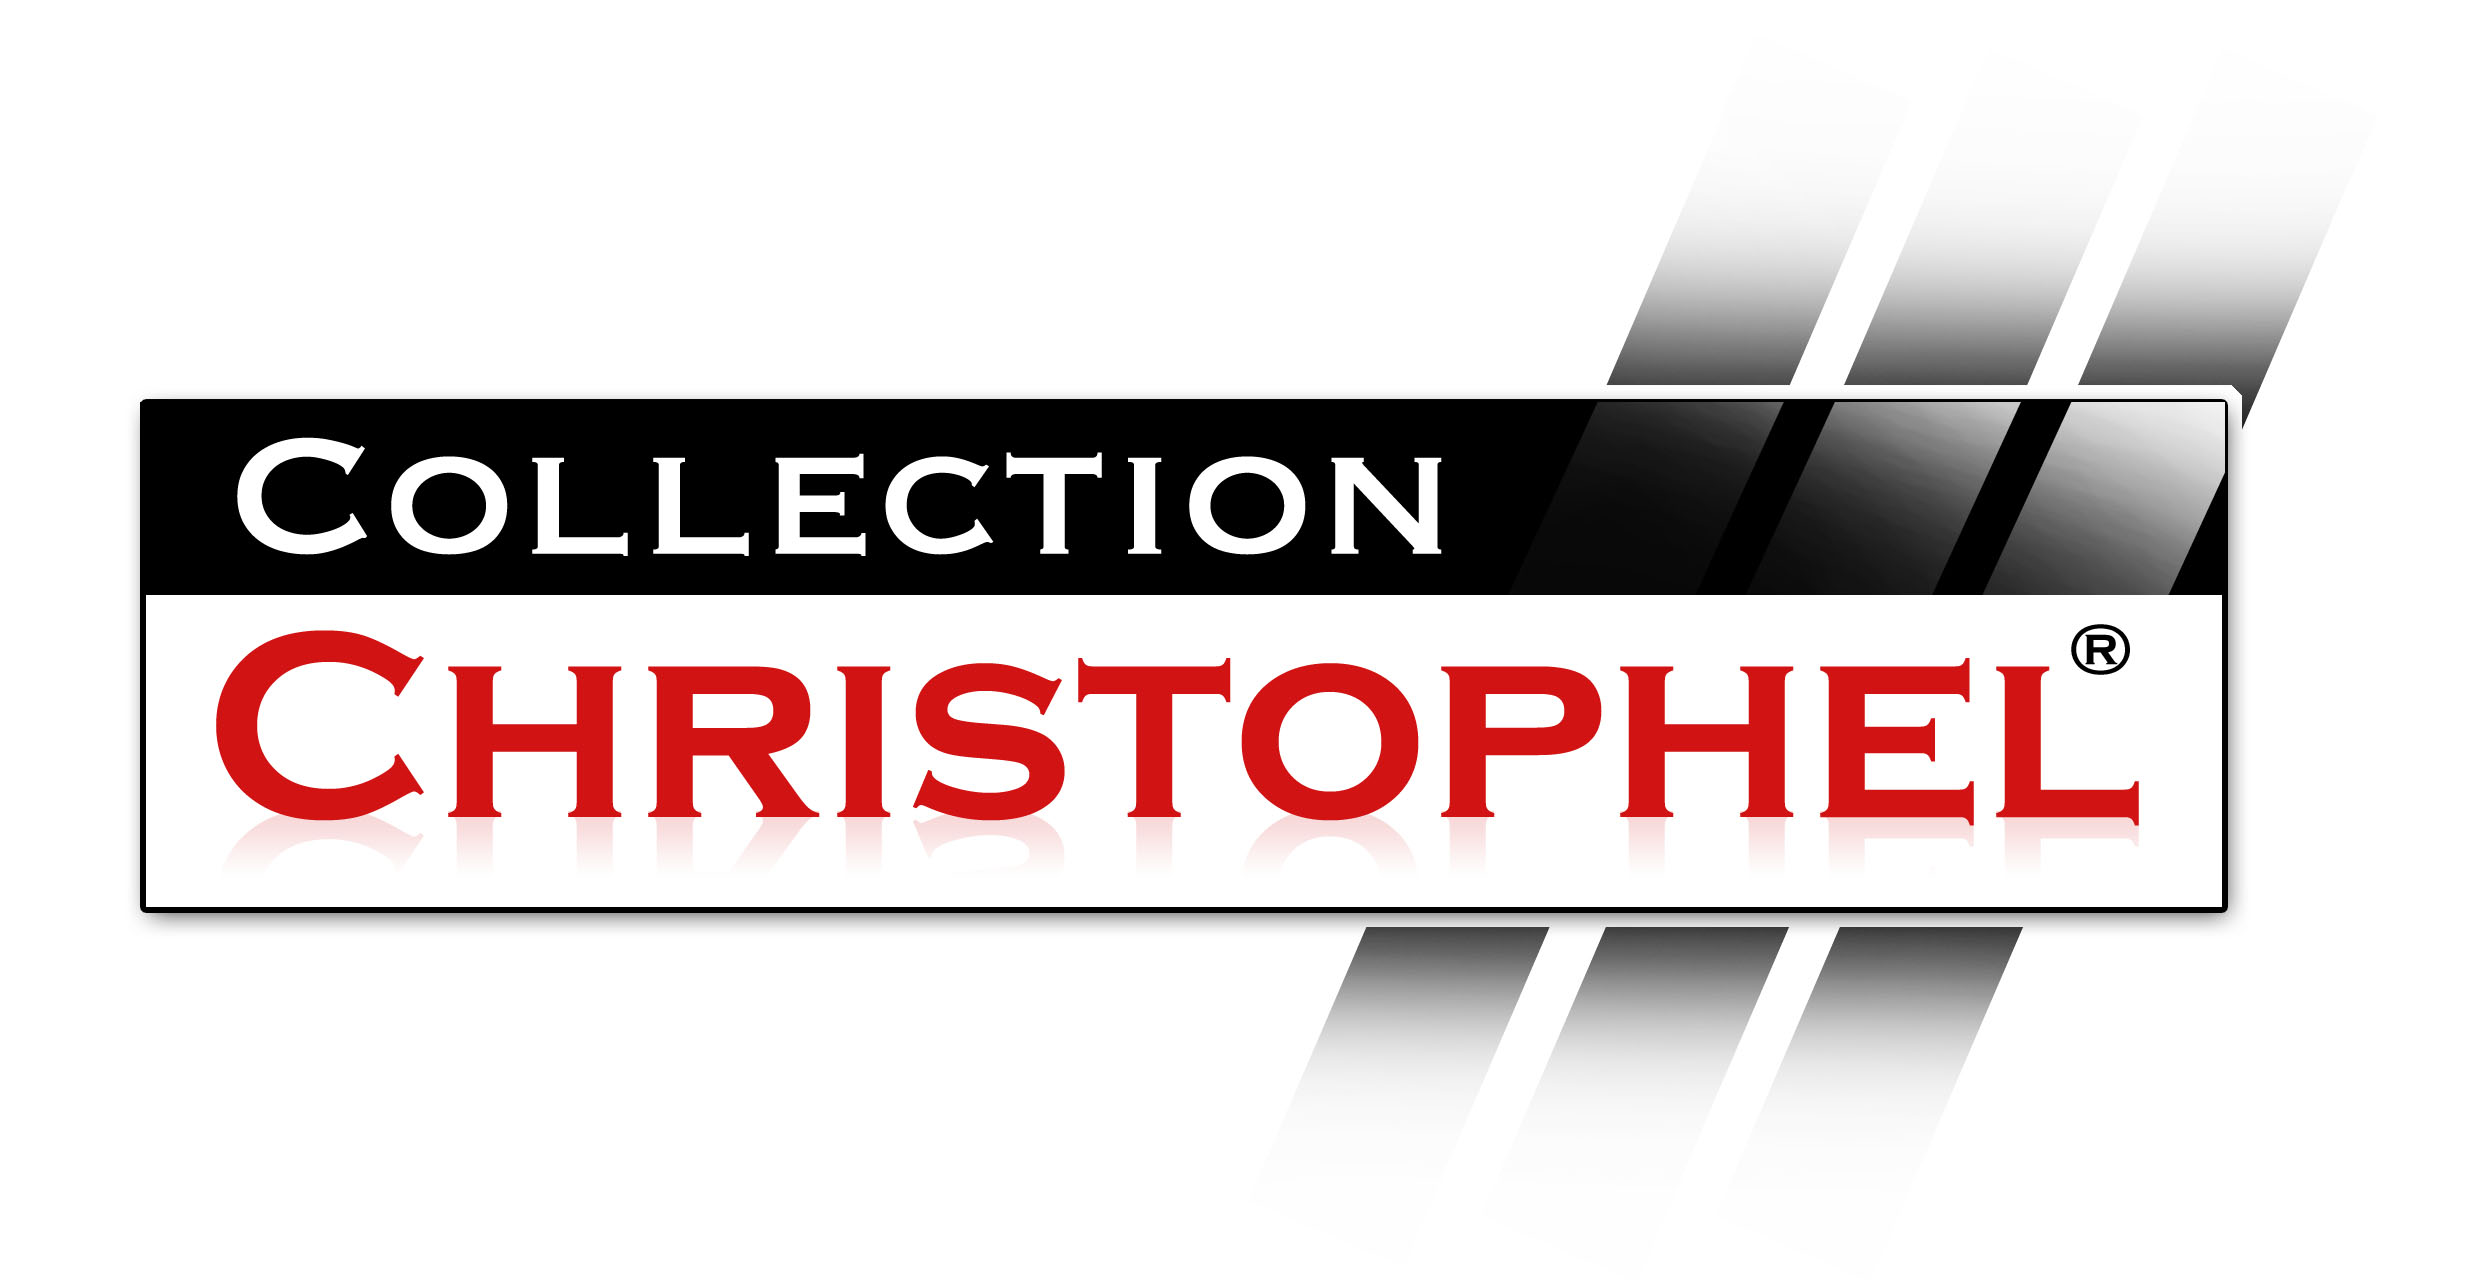 La Collection Christophel rejoint le SNAPIG